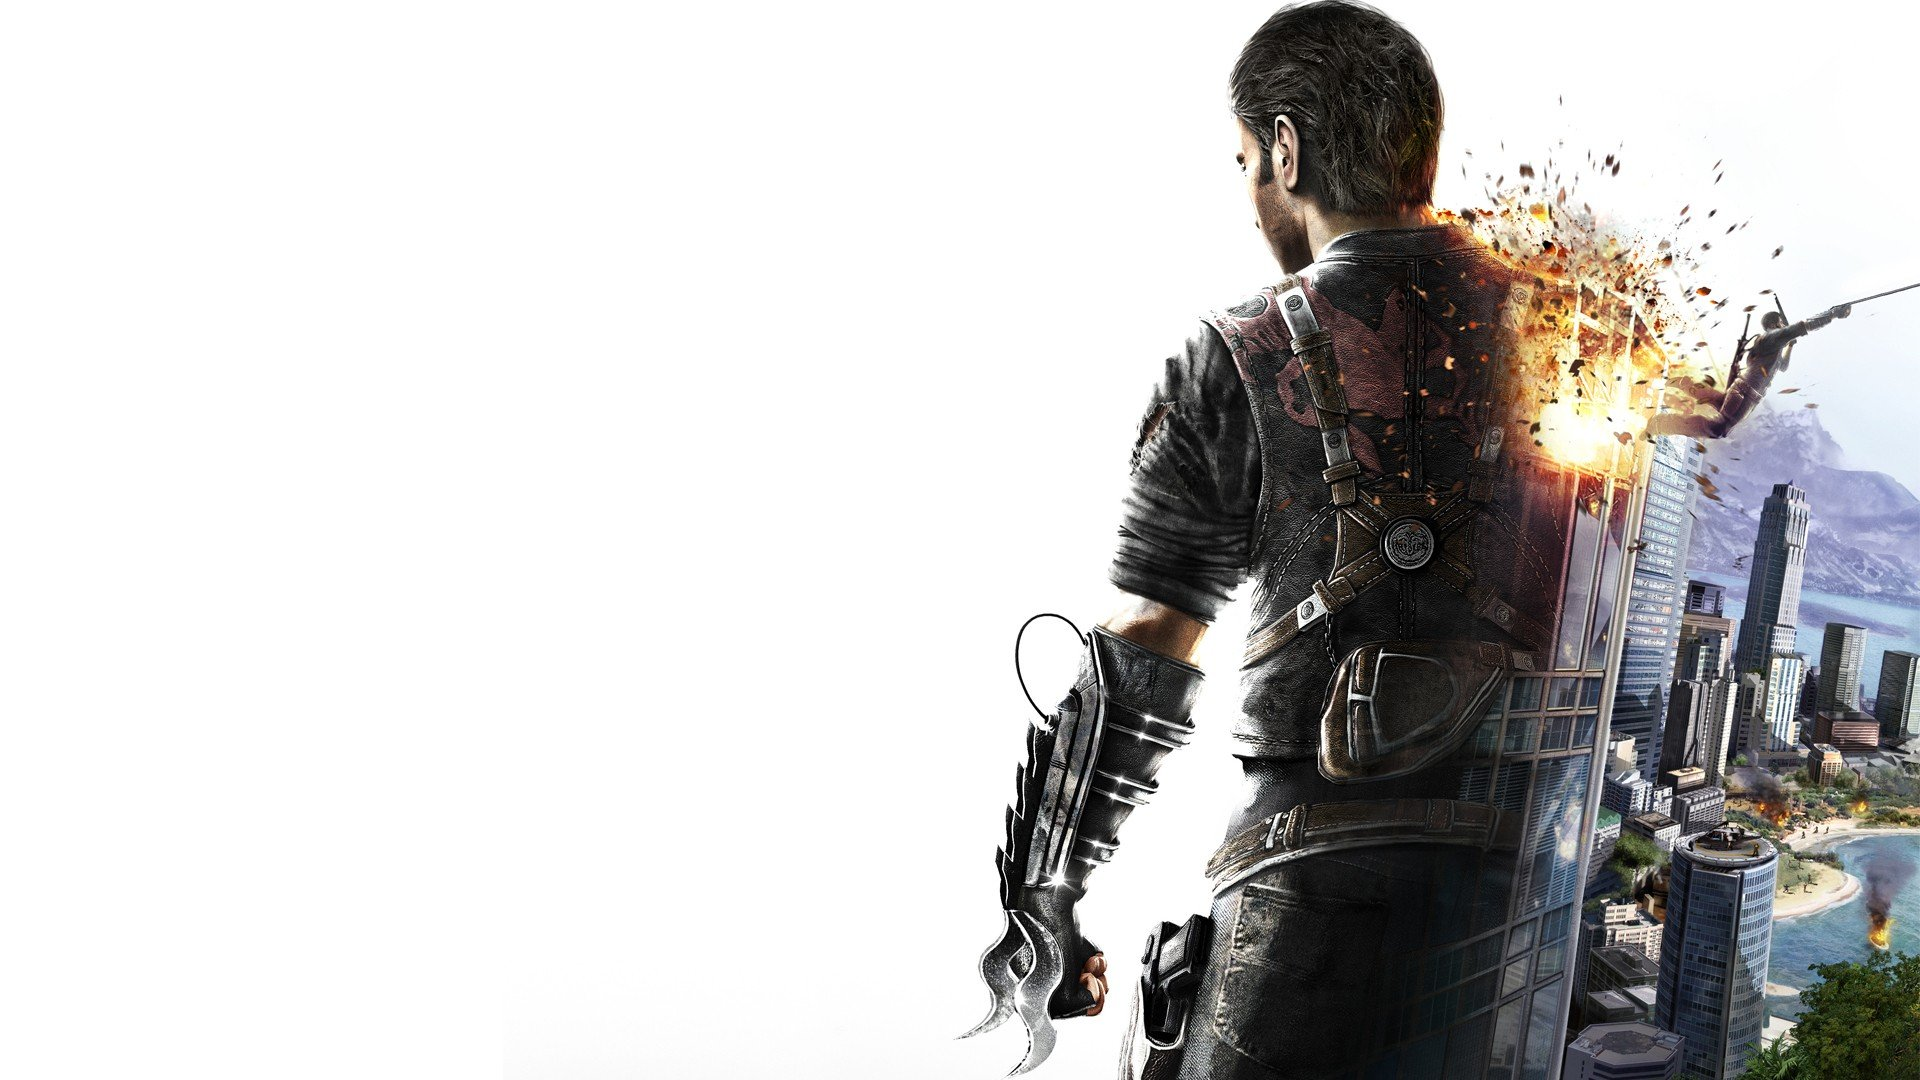 Just Cause HD Games k Wallpapers Images Backgrounds